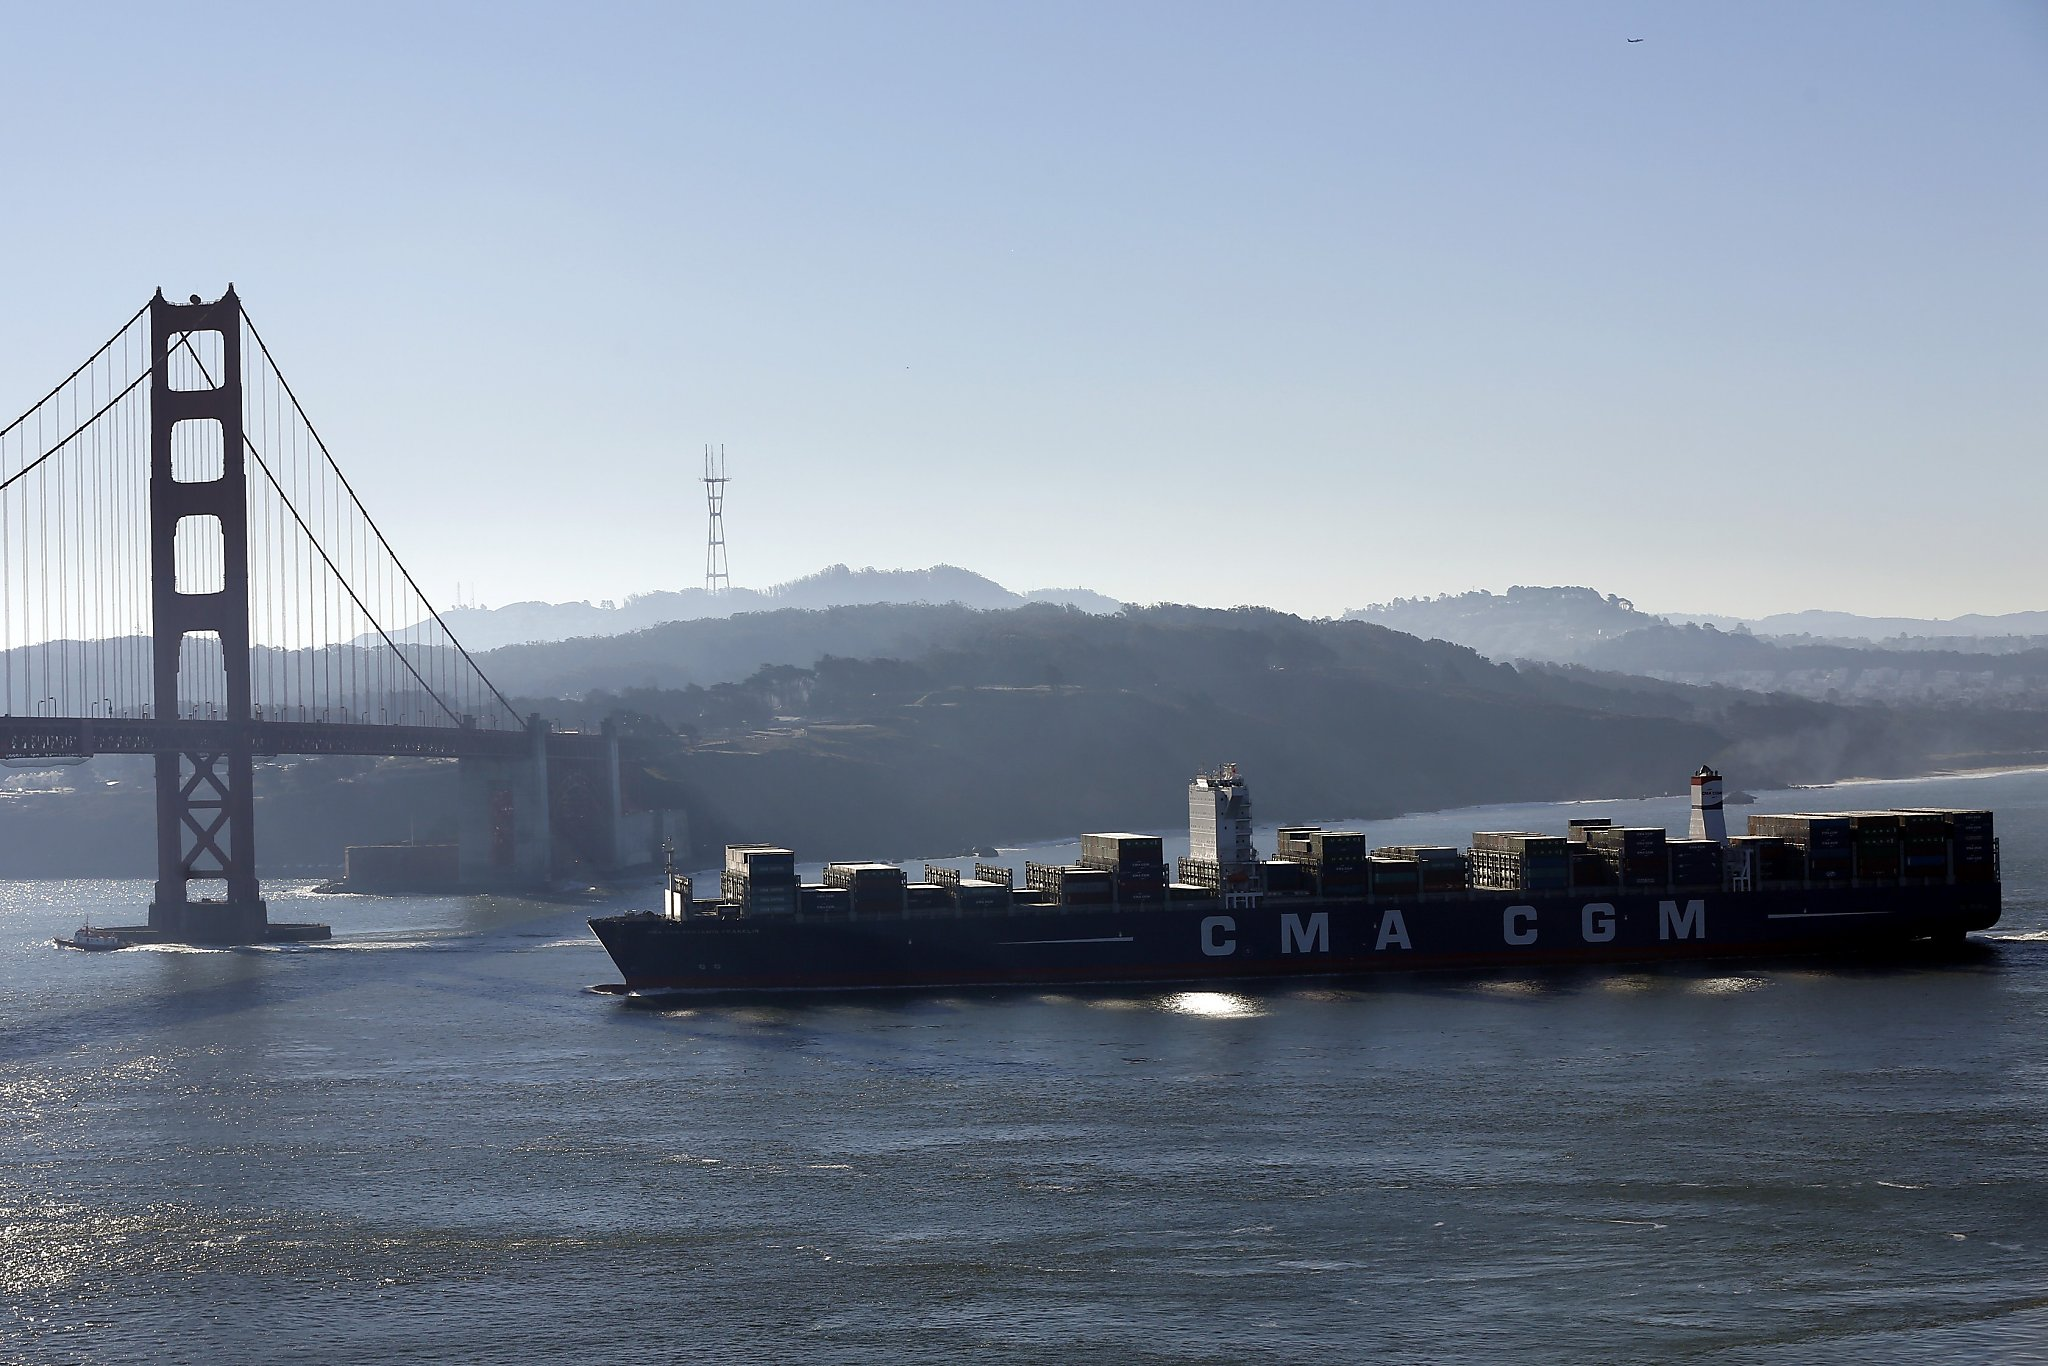 Biggest cargo ship to ever grace S.F. Bay is here - SFGate